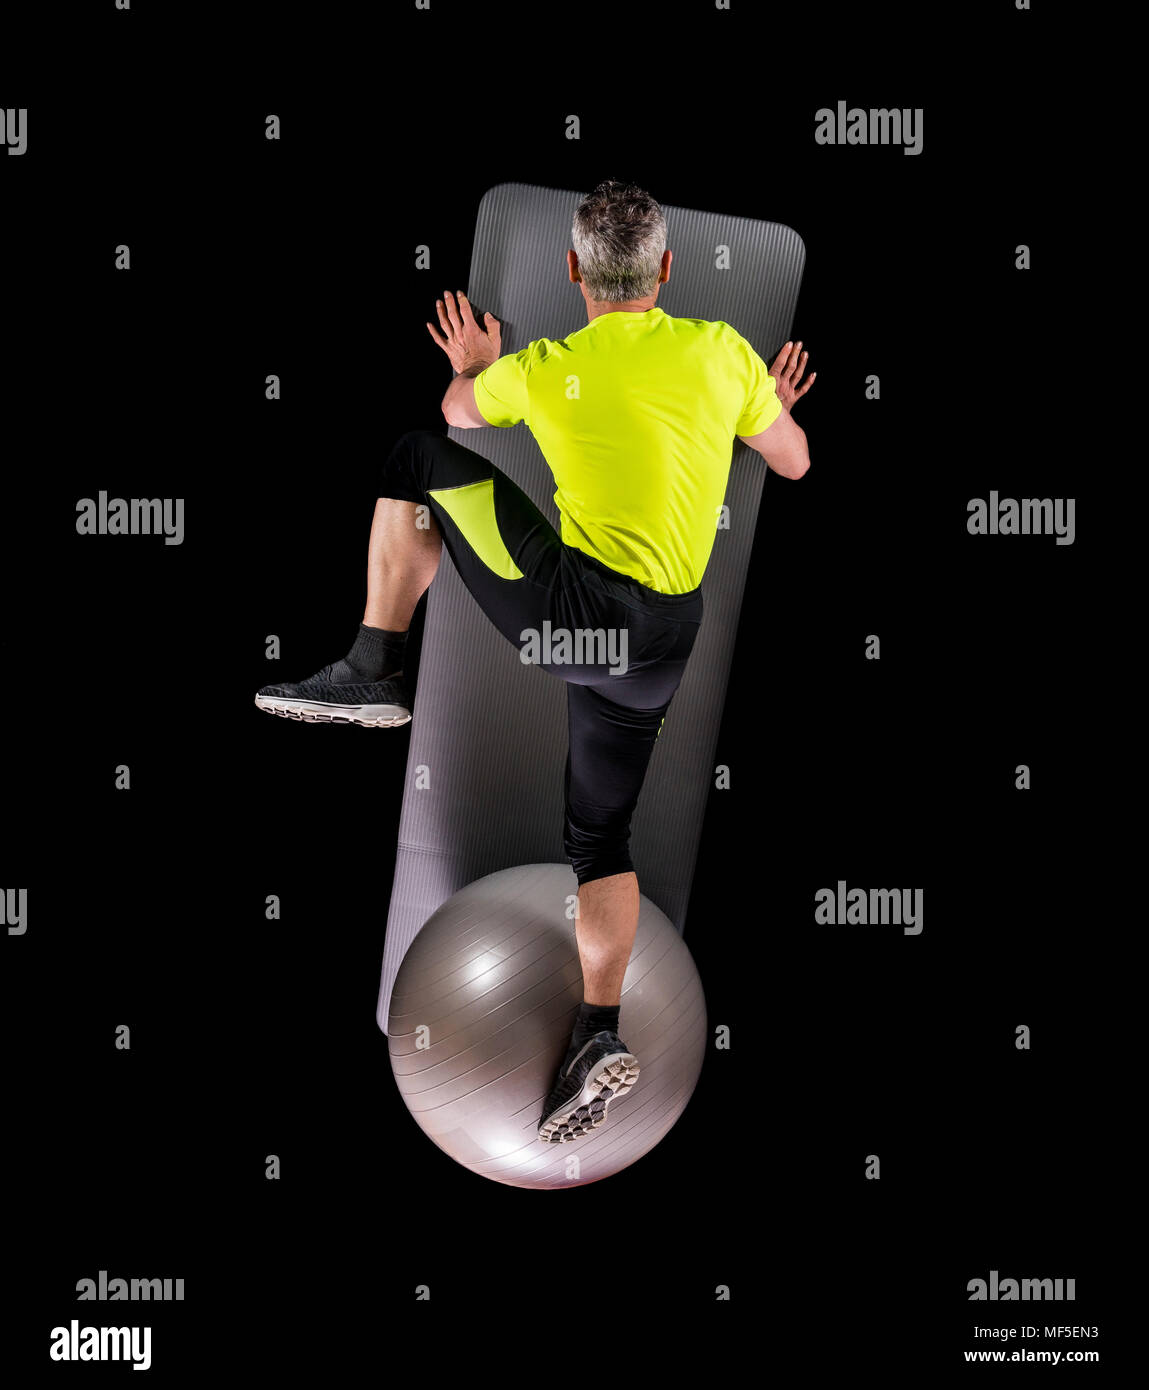 Man exercising with ball gymnastique, vue du dessus Photo Stock